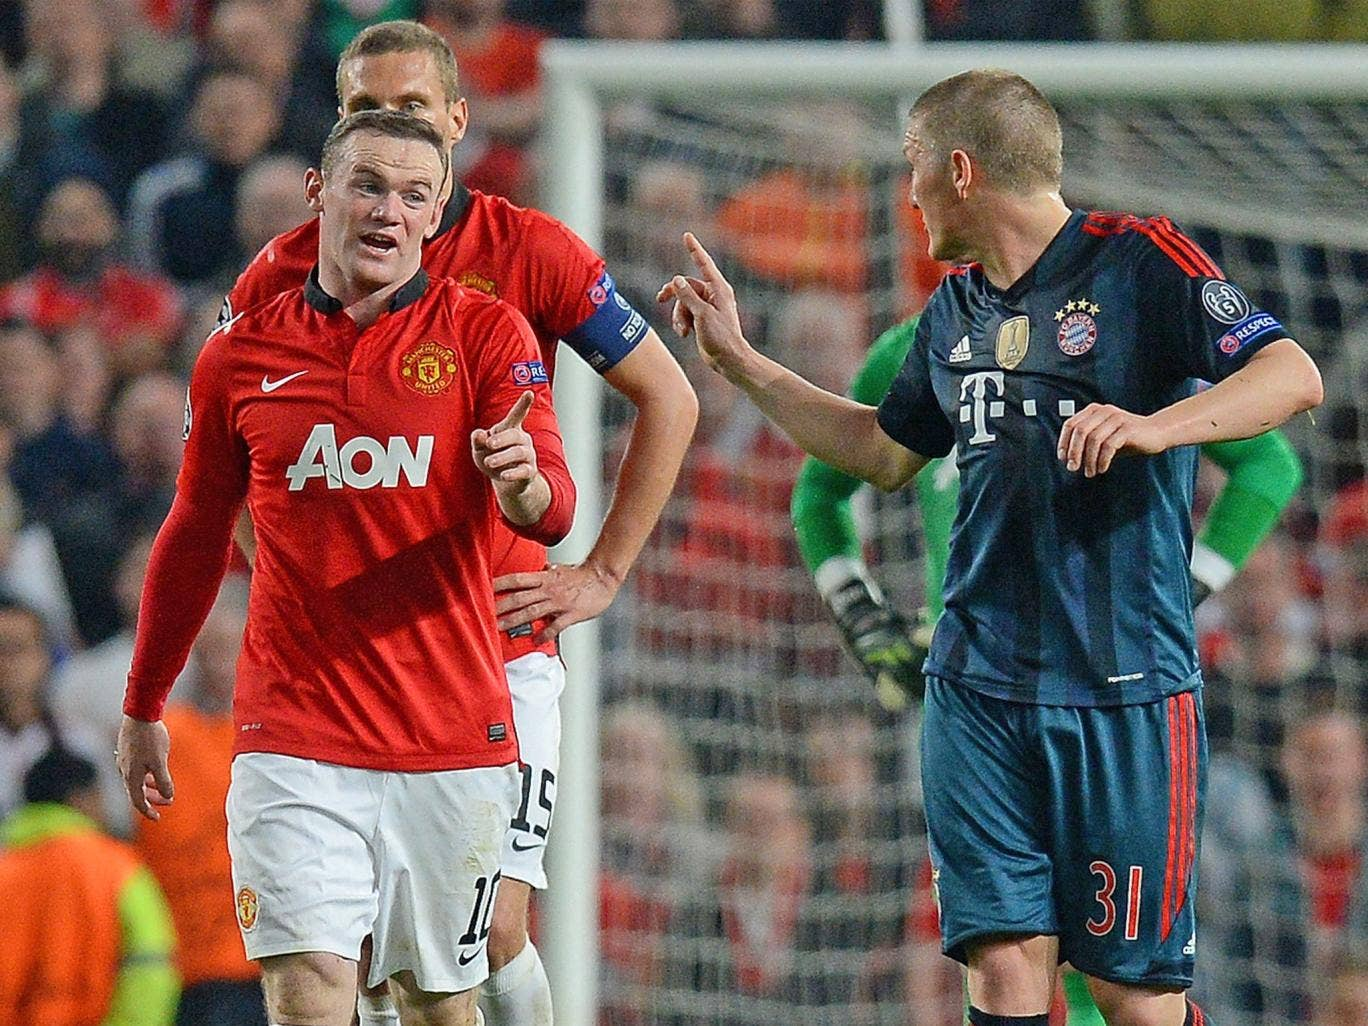 Wayne Rooney and Bastian Schweinsteiger wag fingers at one another following the German midfielder's sending off